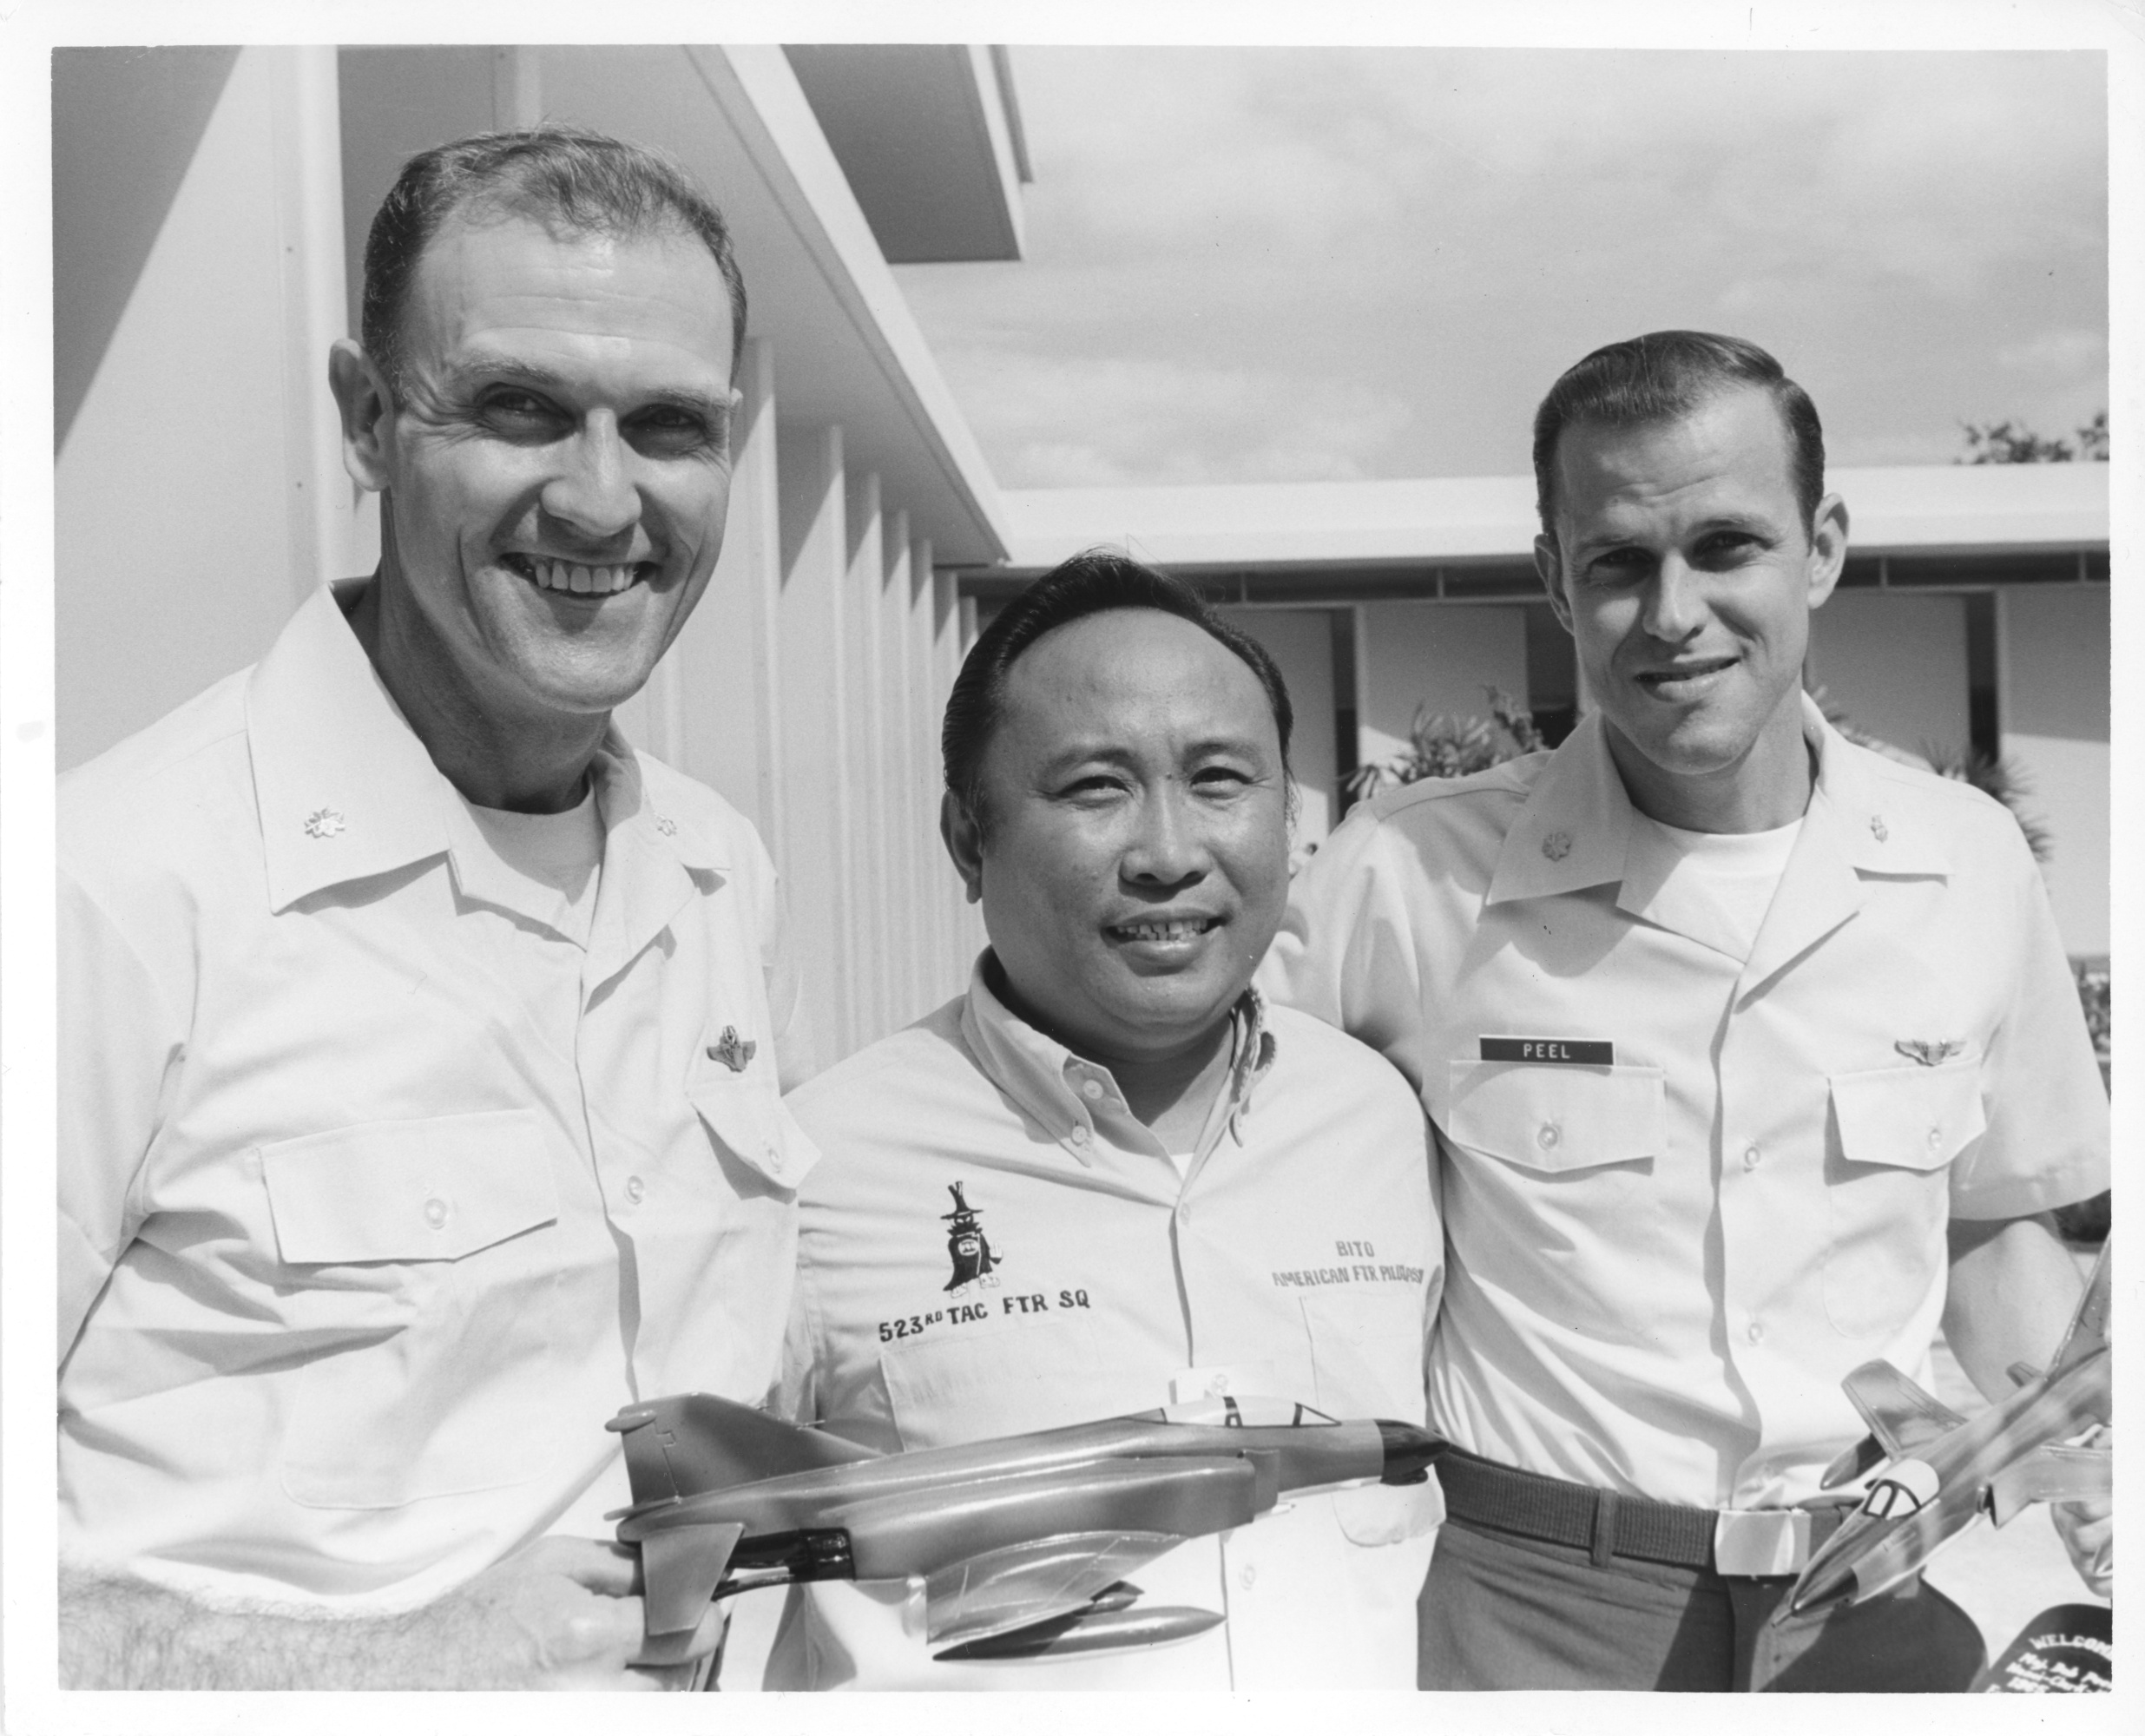 A.J. Meyer (left), Bob Peel (right) with Bito at Clark AFB 2-1973